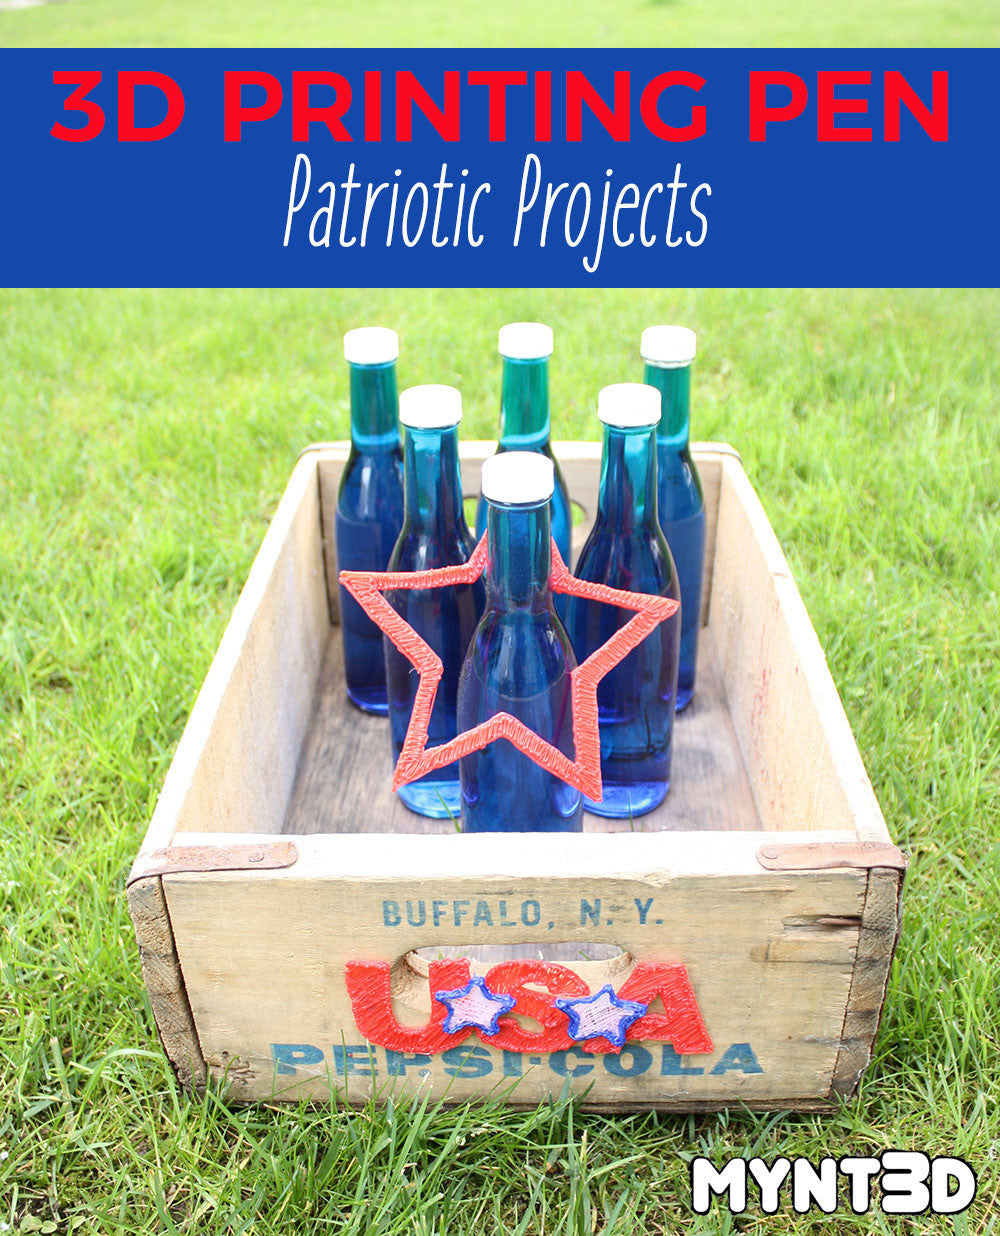 Patriotic Projects Made with a 3D Printing Pen